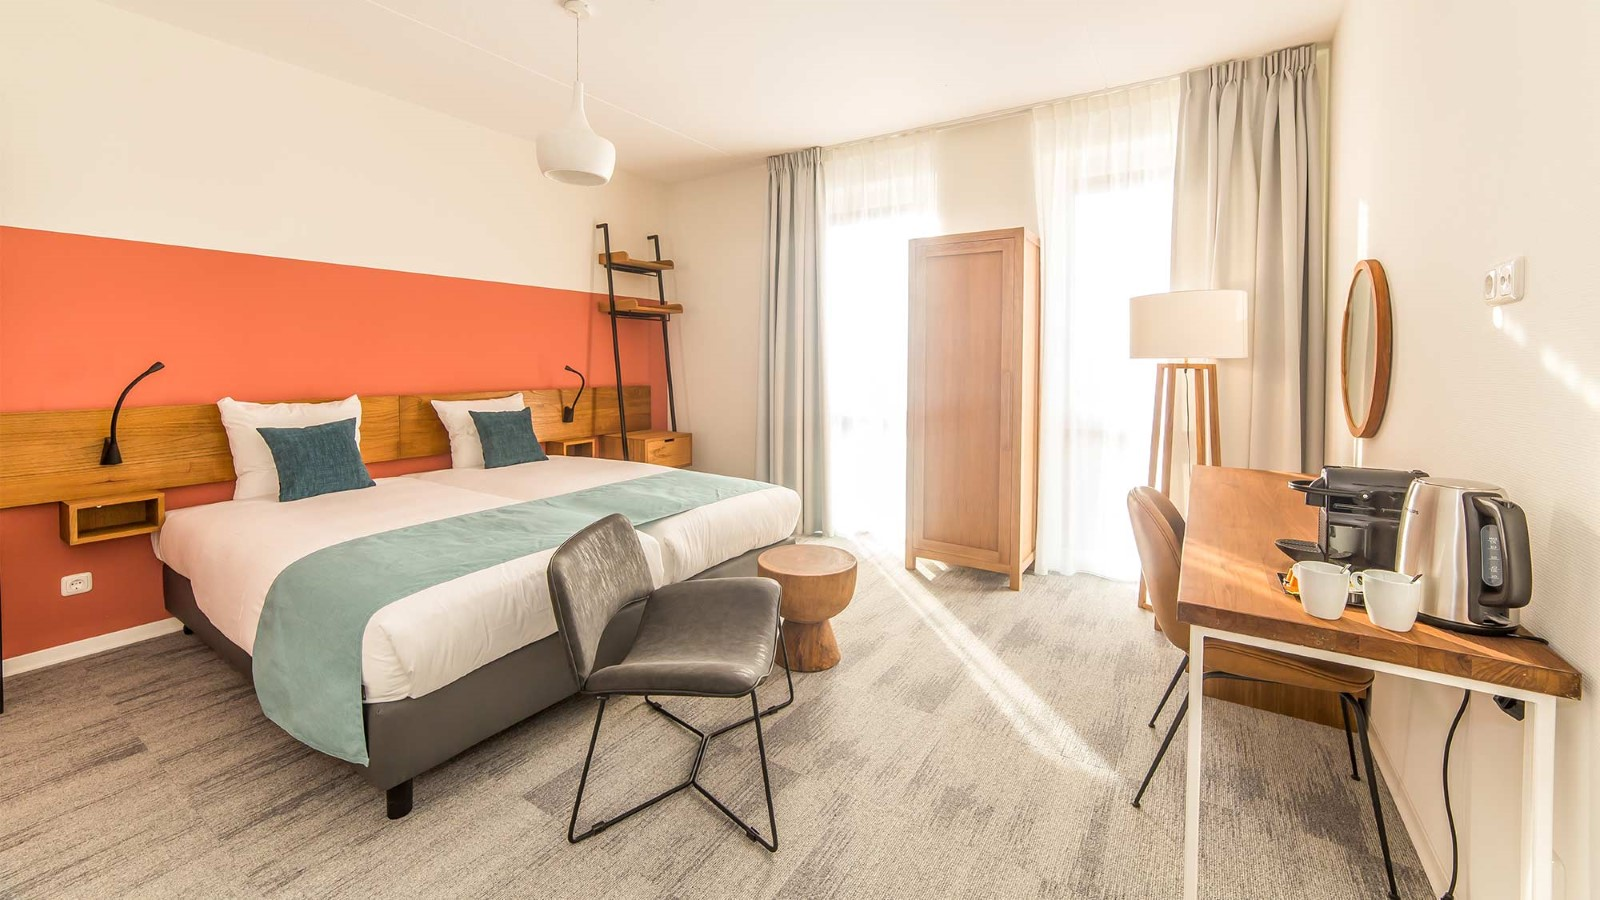 Hotel apartment - 2 bedrooms